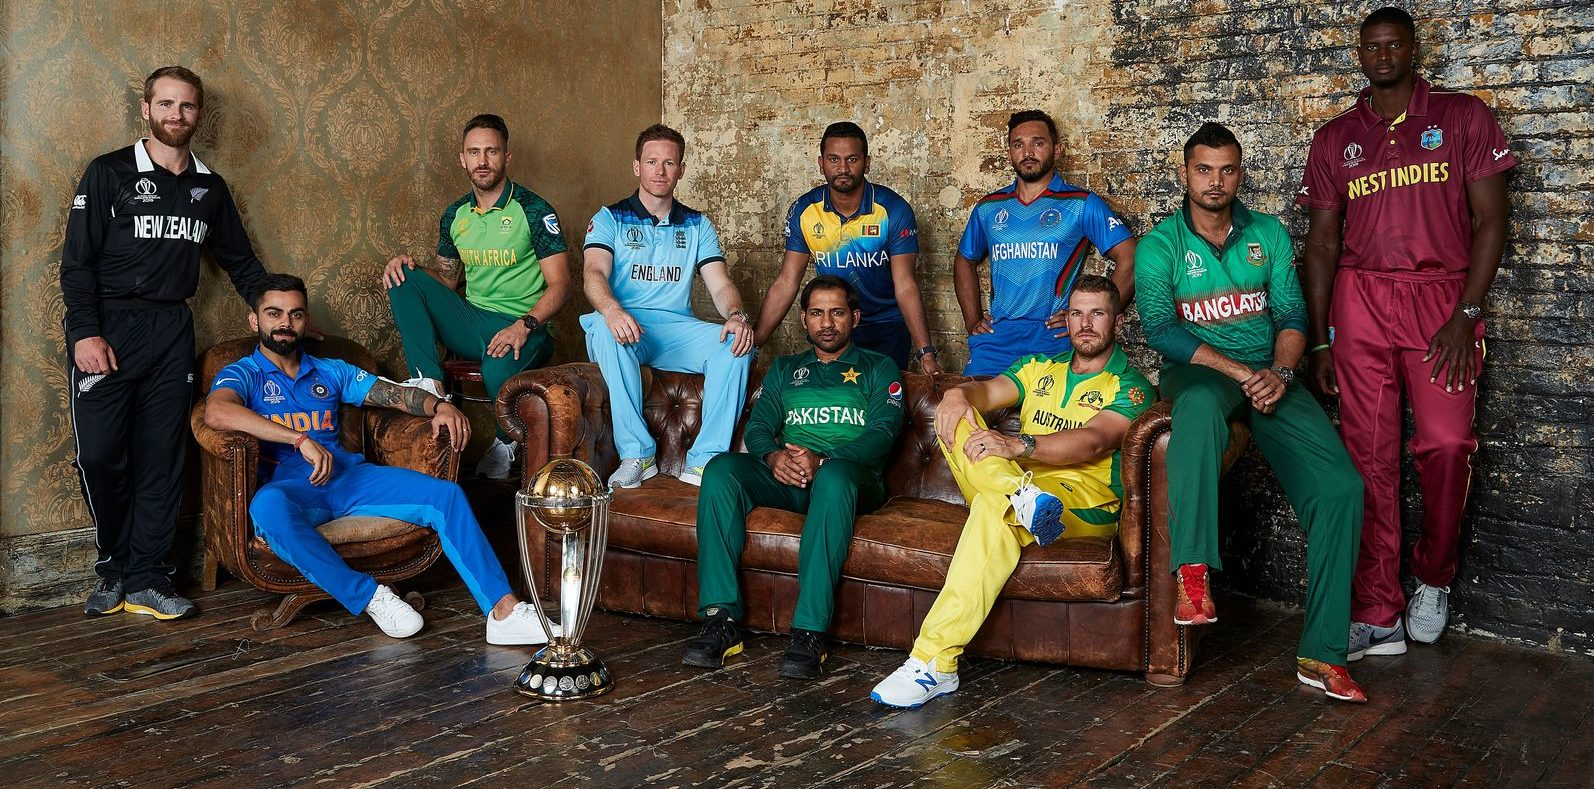 Icc cricket world cup  game online play